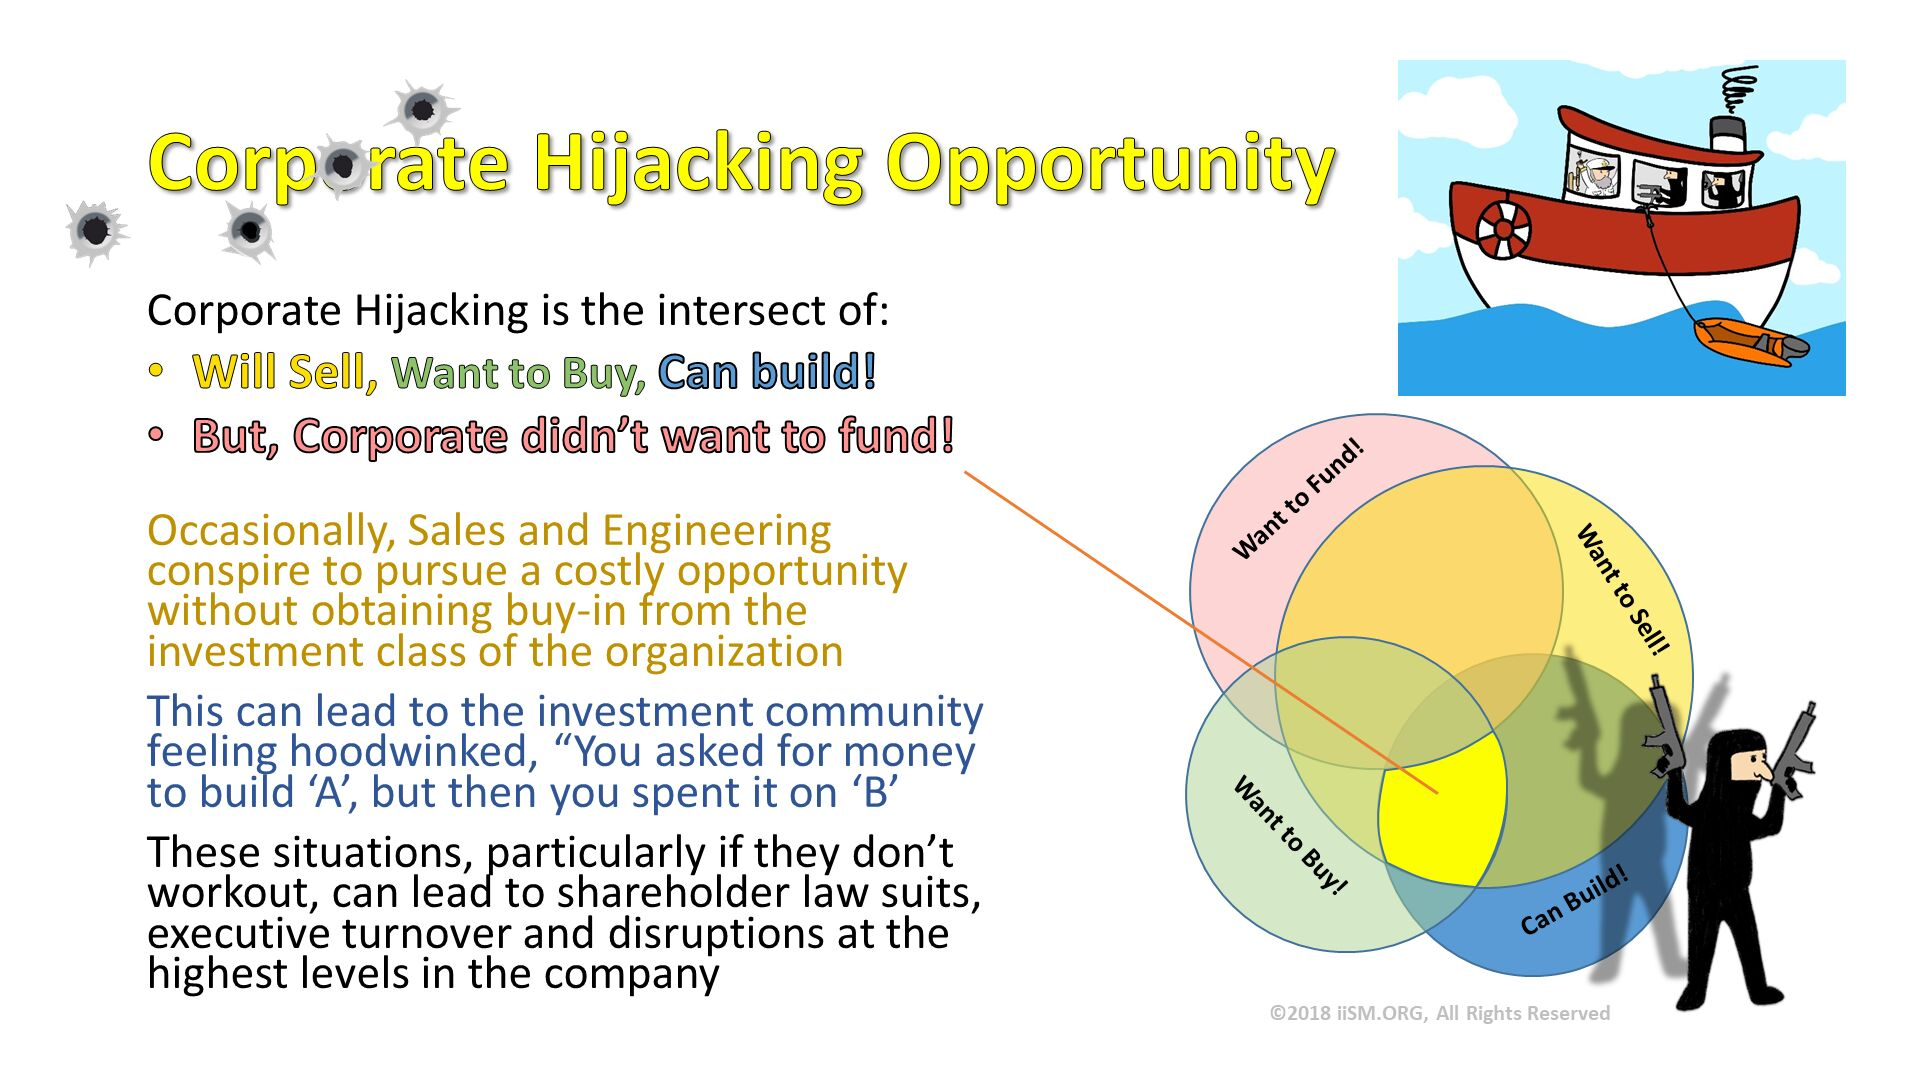 "Corporate Hijacking Opportunity. Corporate Hijacking is the intersect of: Will Sell, Want to Buy, Can build! But, Corporate didn't want to fund!  Occasionally, Sales and Engineering conspire to pursue a costly opportunity without obtaining buy-in from the investment class of the organization This can lead to the investment community feeling hoodwinked, ""You asked for money to build 'A', but then you spent it on 'B' These situations, particularly if they don't workout, can lead to shareholder law suits, executive turnover and disruptions at the highest levels in the company  ."